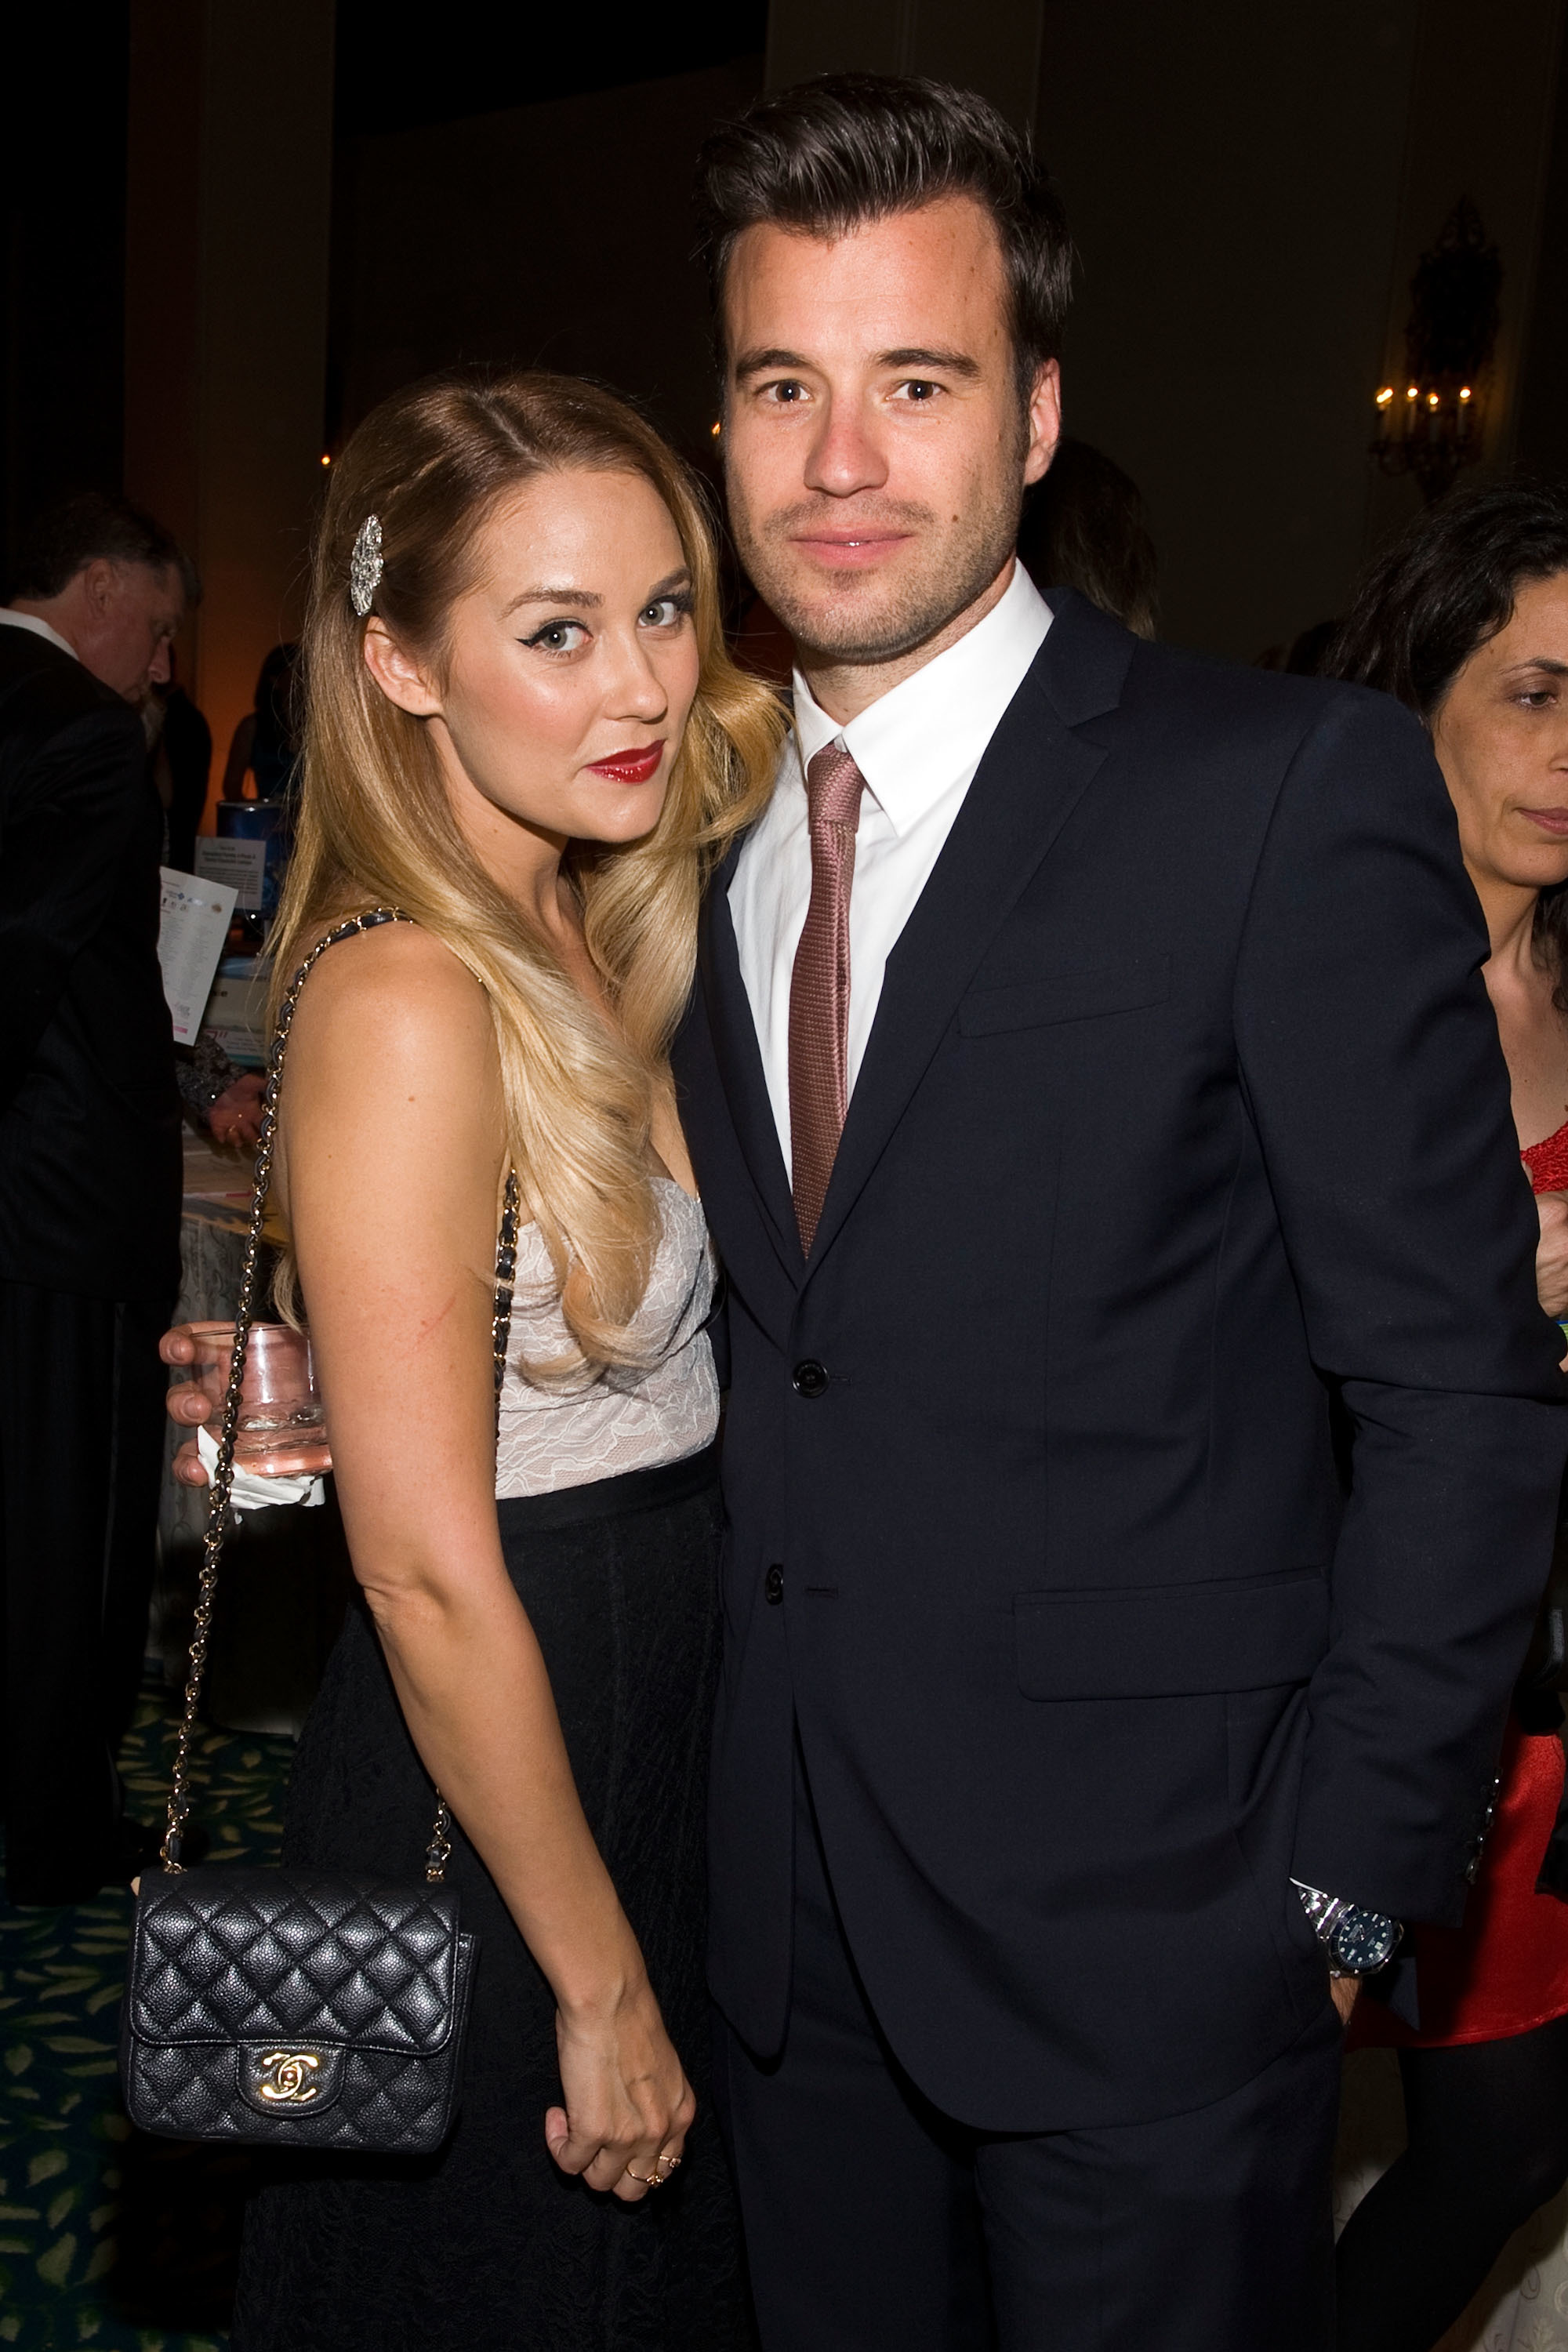 Lauren Conrad and her husband go way back